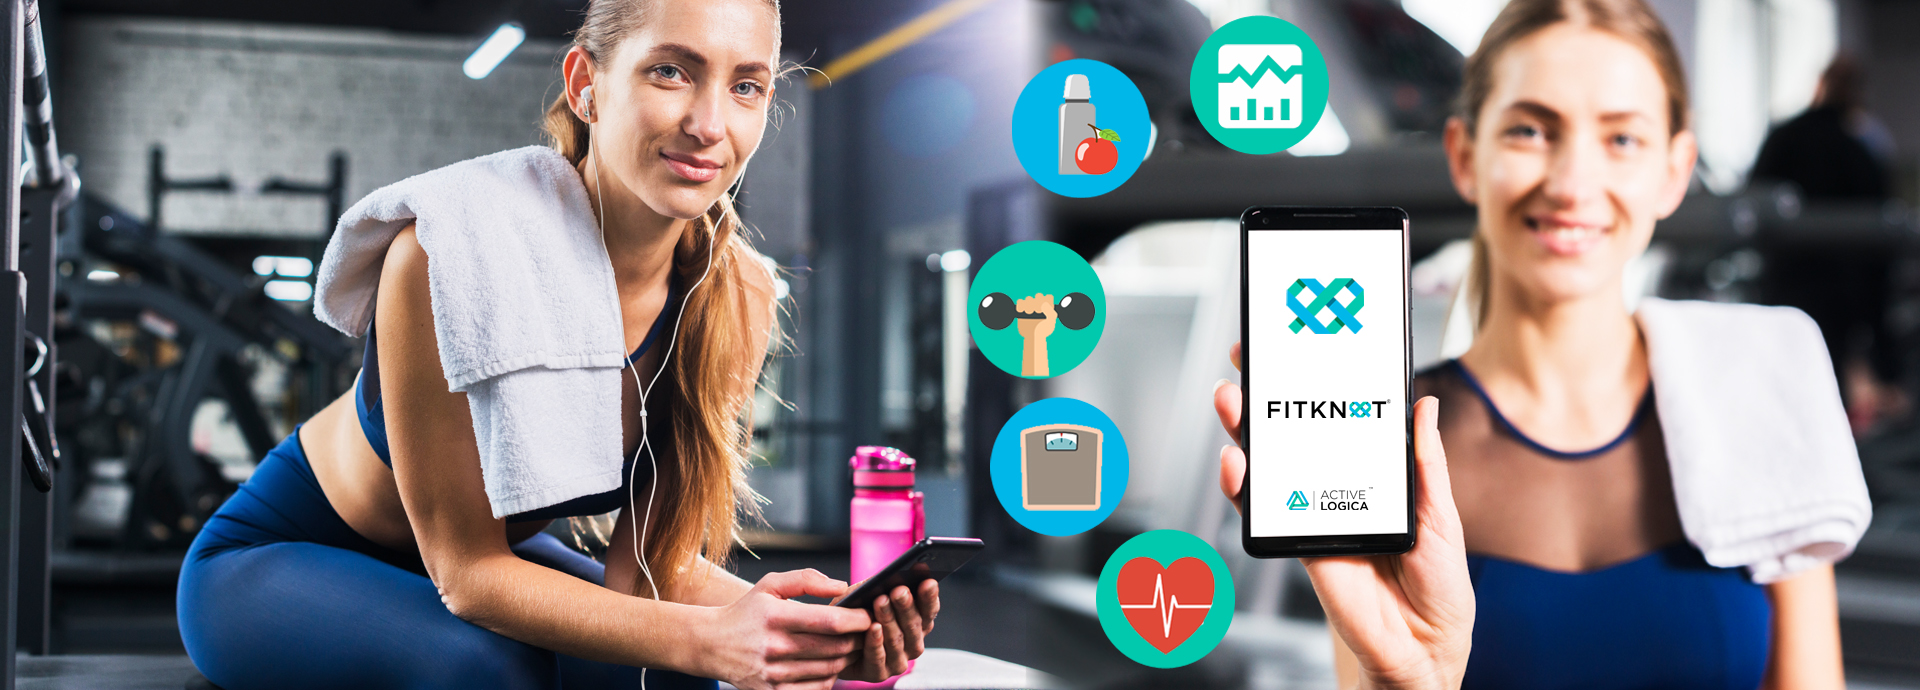 Personal Health & Fitness Analysis